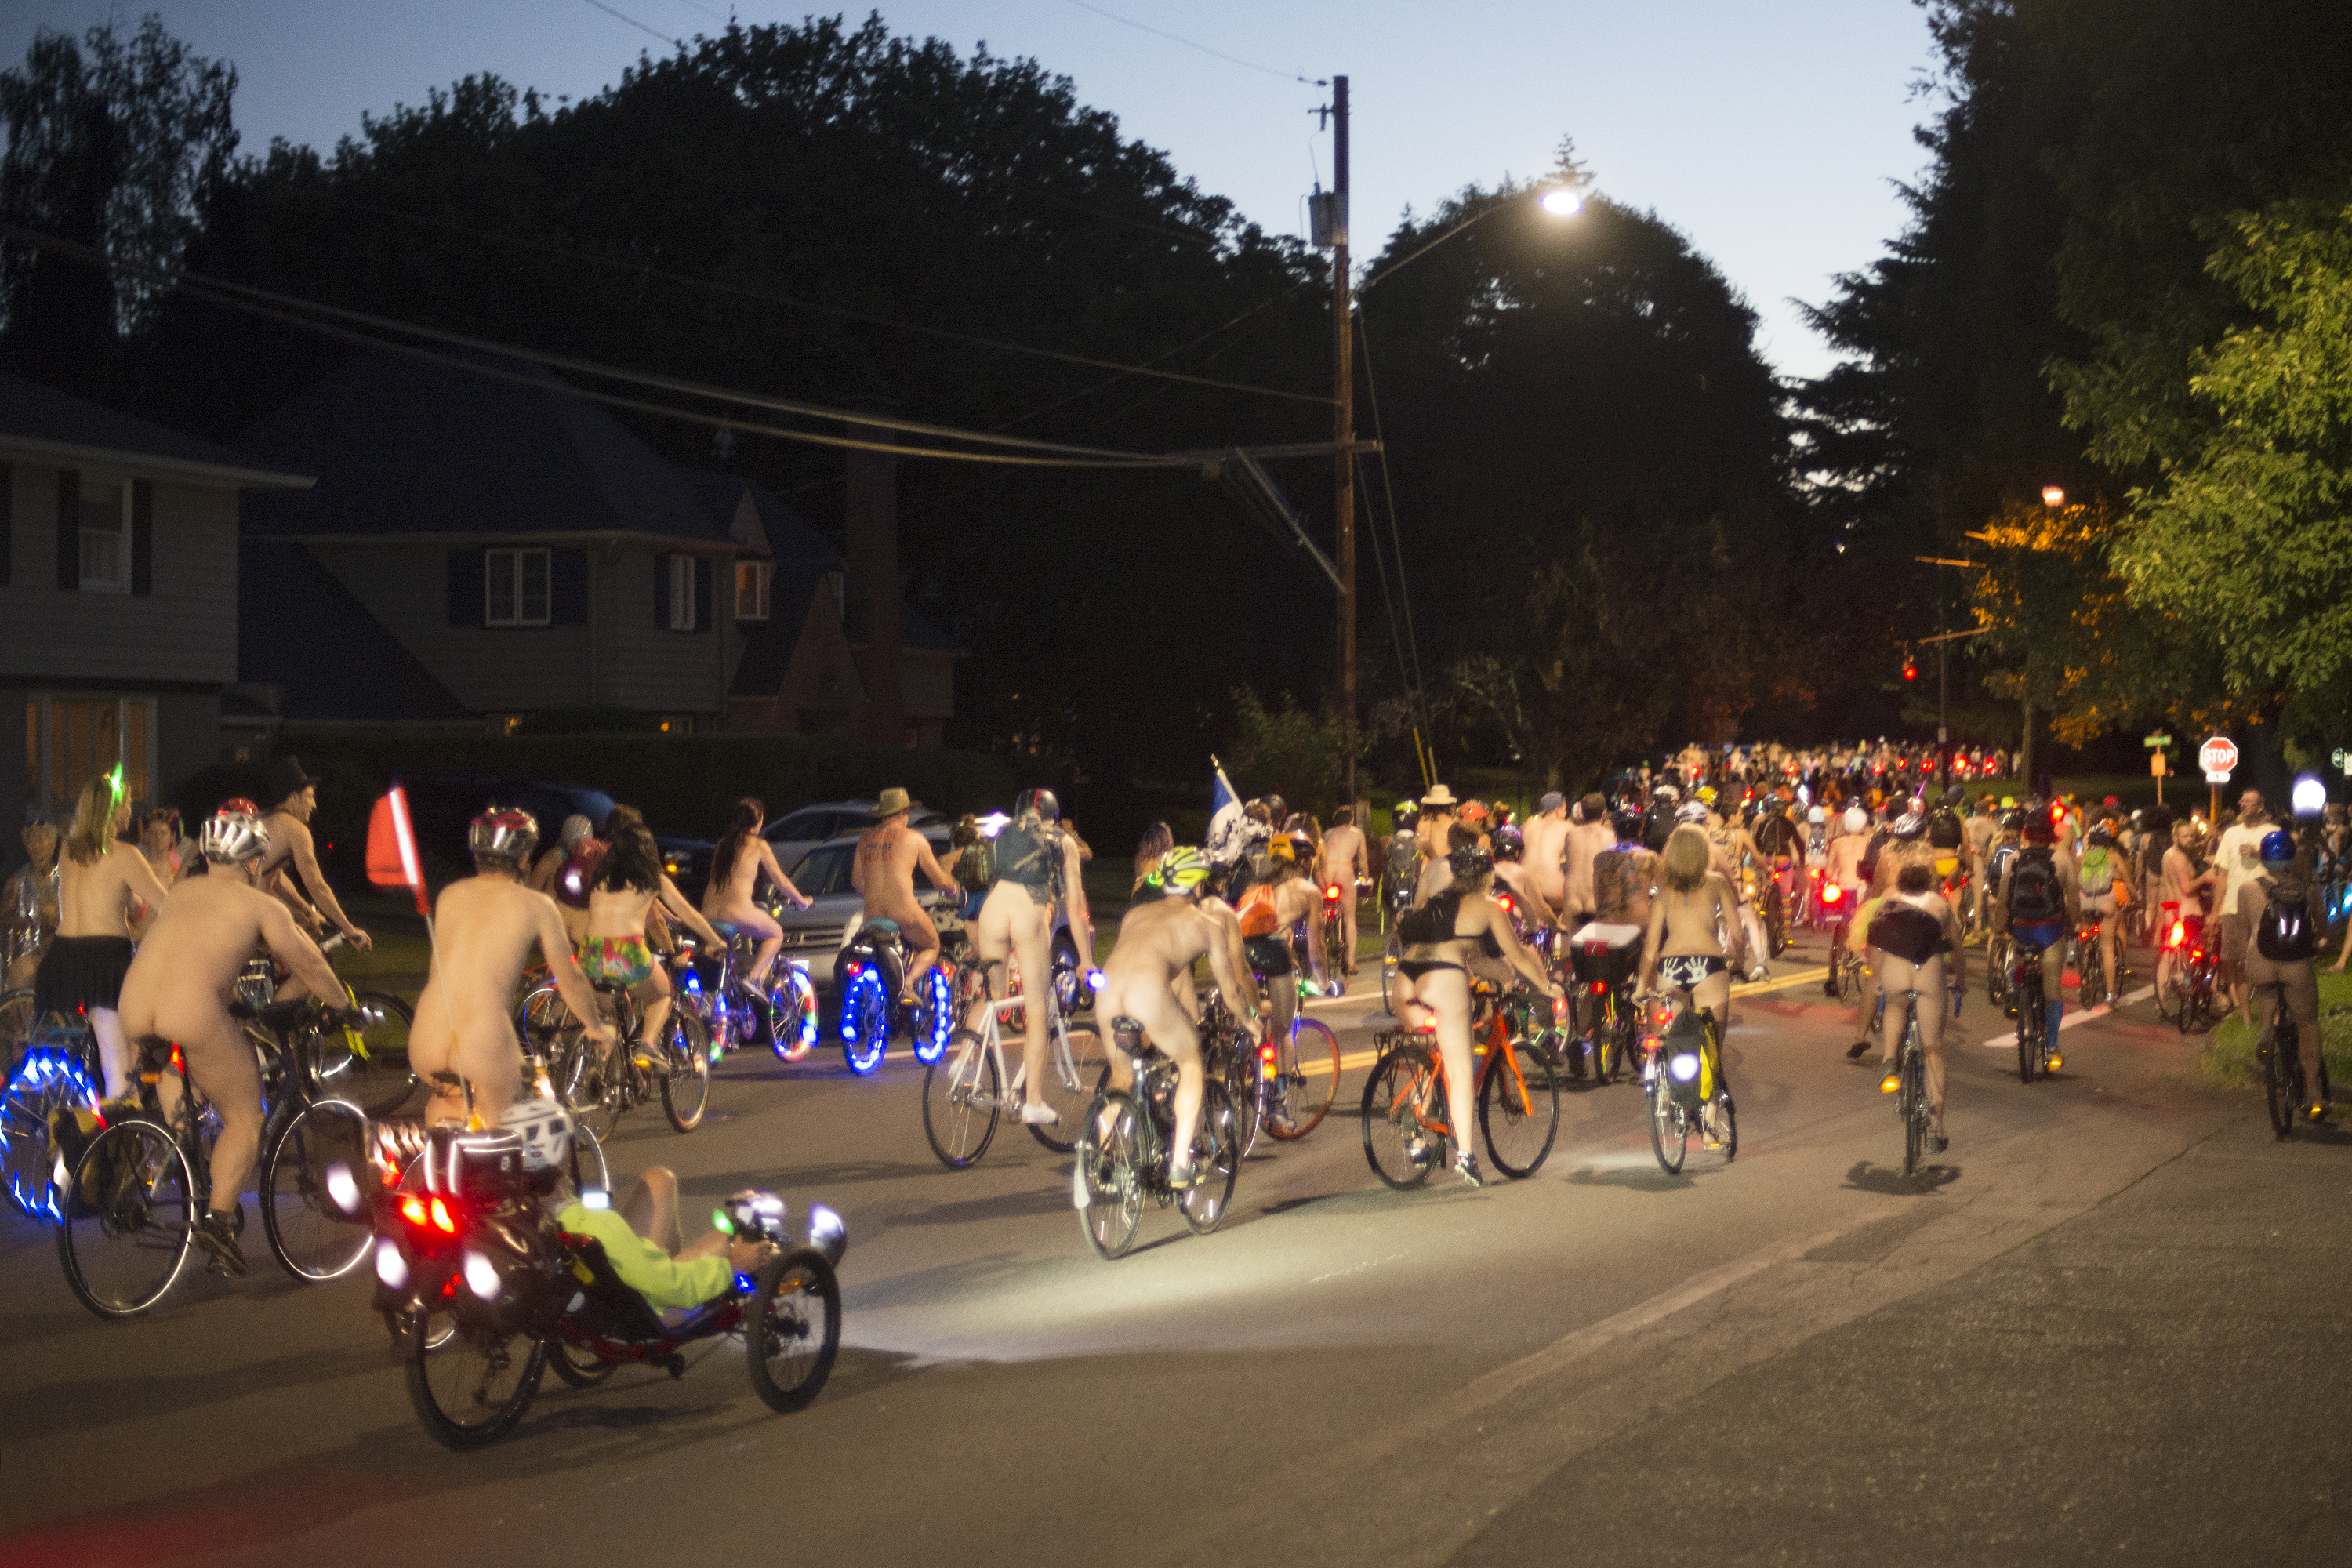 WNBR_WorldNakedBikeRide2016_JeffWalls_DSC4479